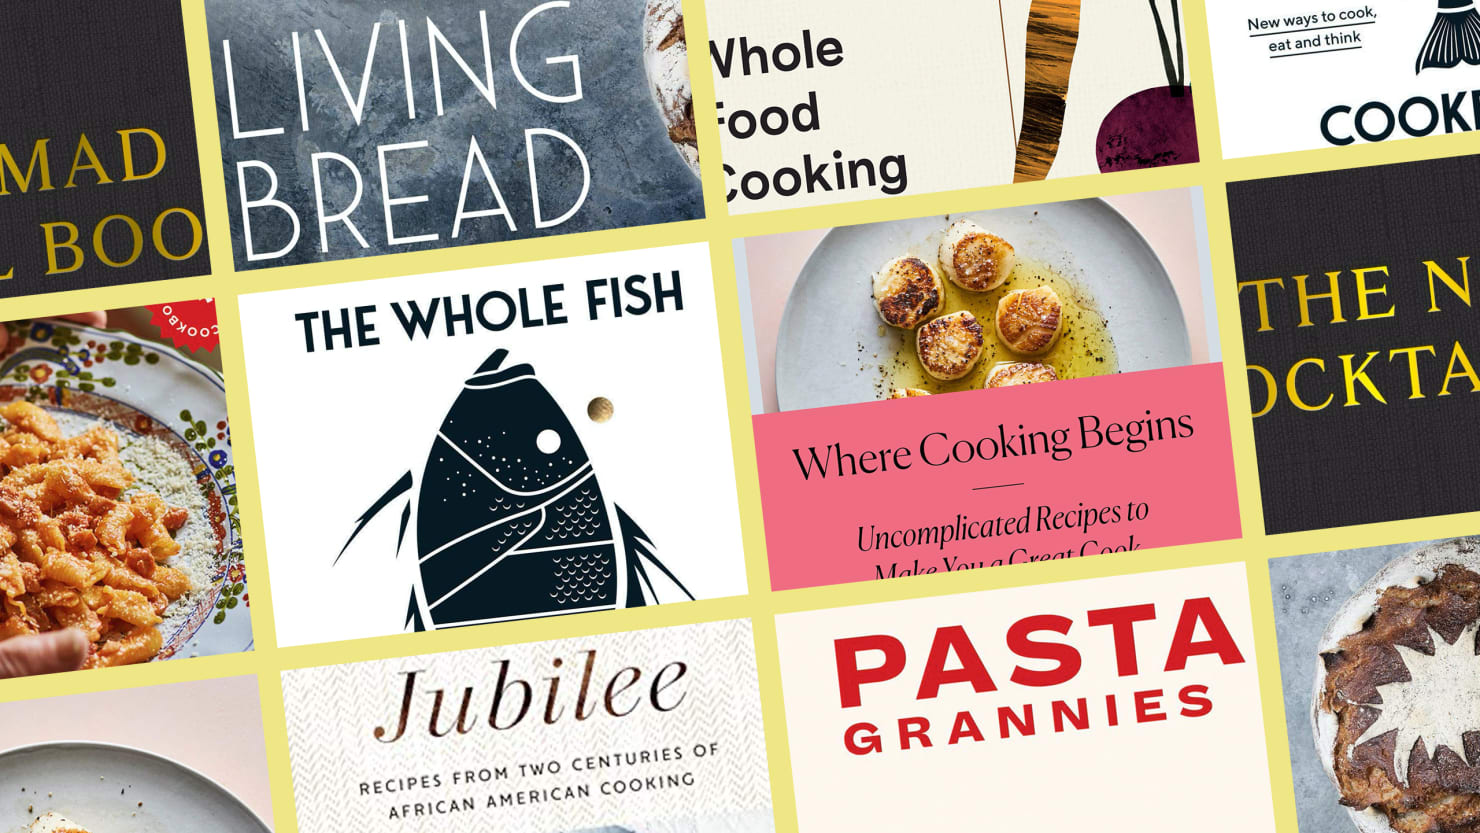 Add These James Beard Award Winning Cookbooks to Your Shelf